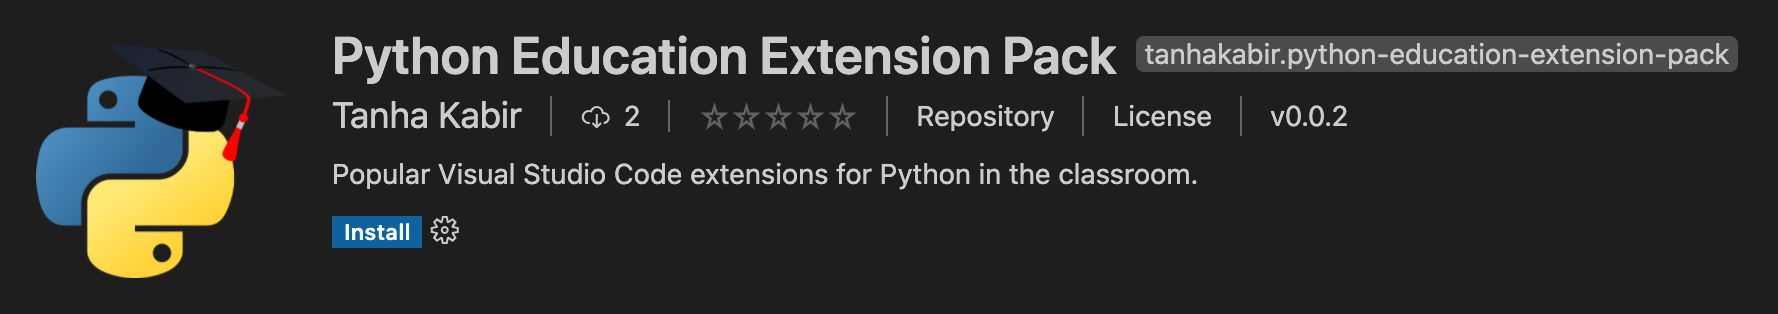 Python Education Extension Pack